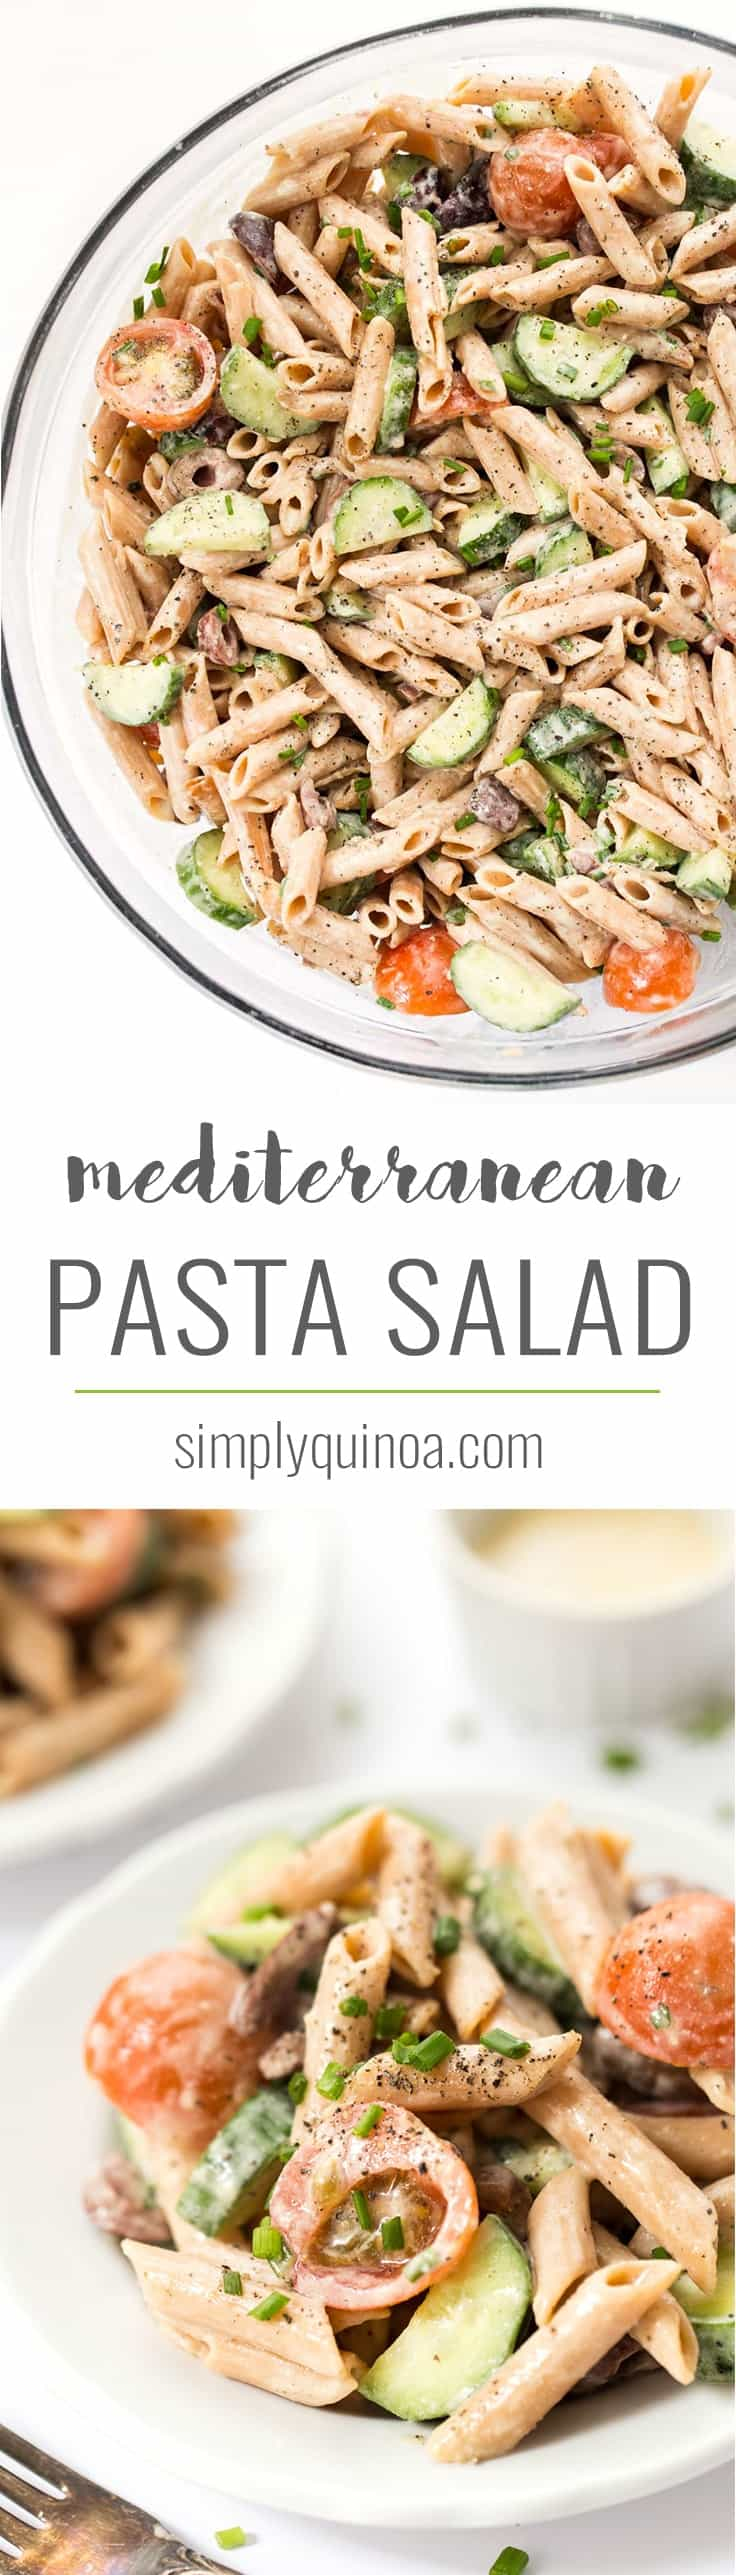 This rich and creamy Mediterranean Pasta Salad is made with a delicious, tangy dressing and is packed with veggies! It's vegan, gluten-free & high-protein!